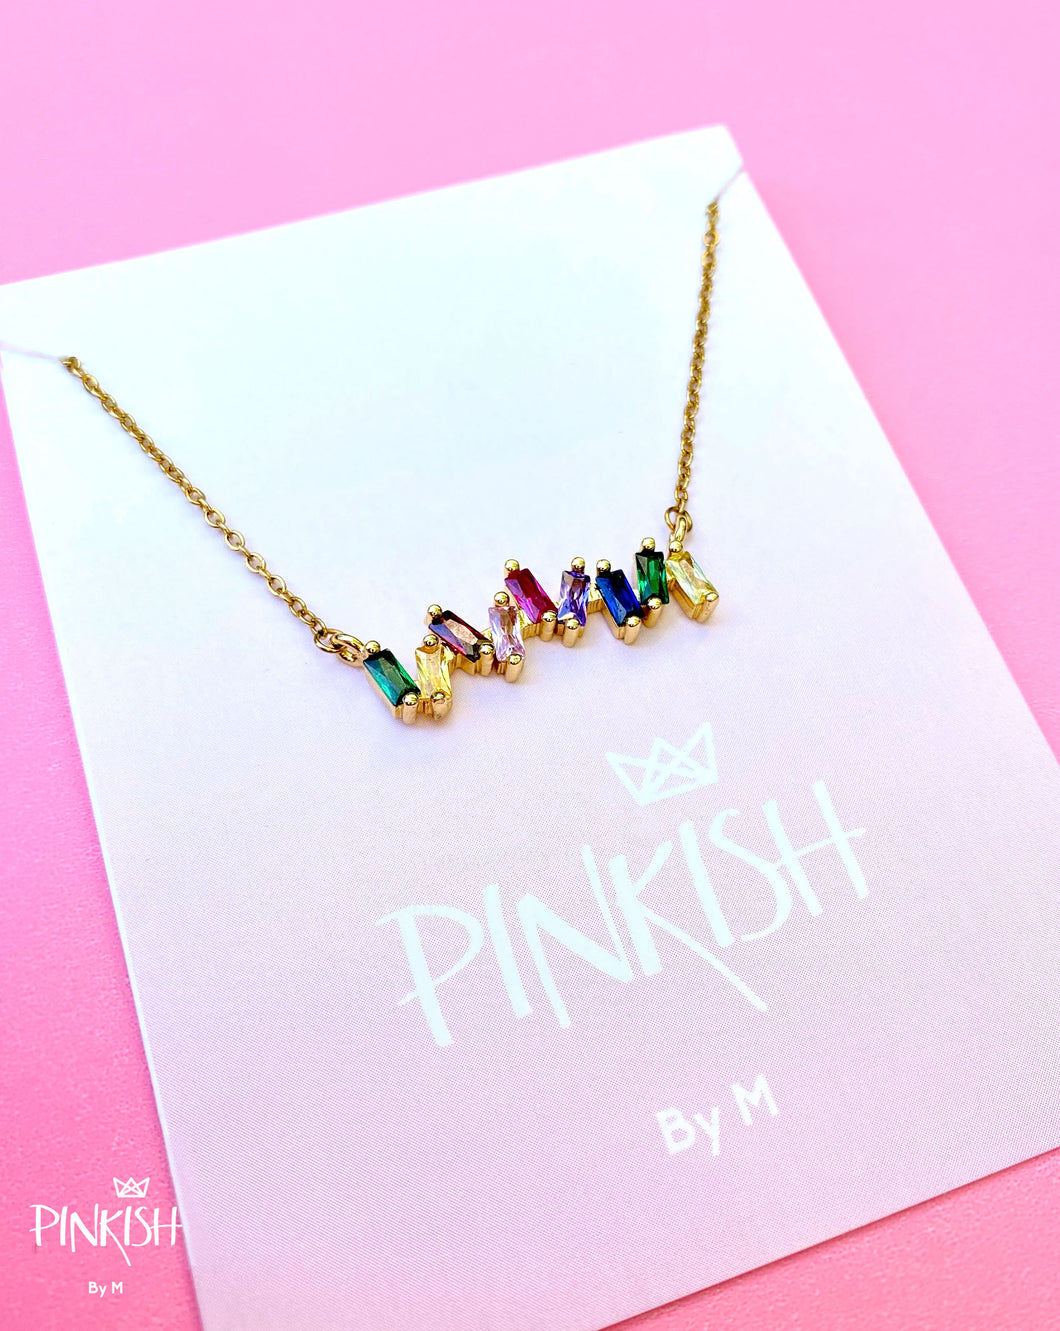 14kt Gold Plated Multi-Colored Rainbow Cubic Zirconia Bar Necklace